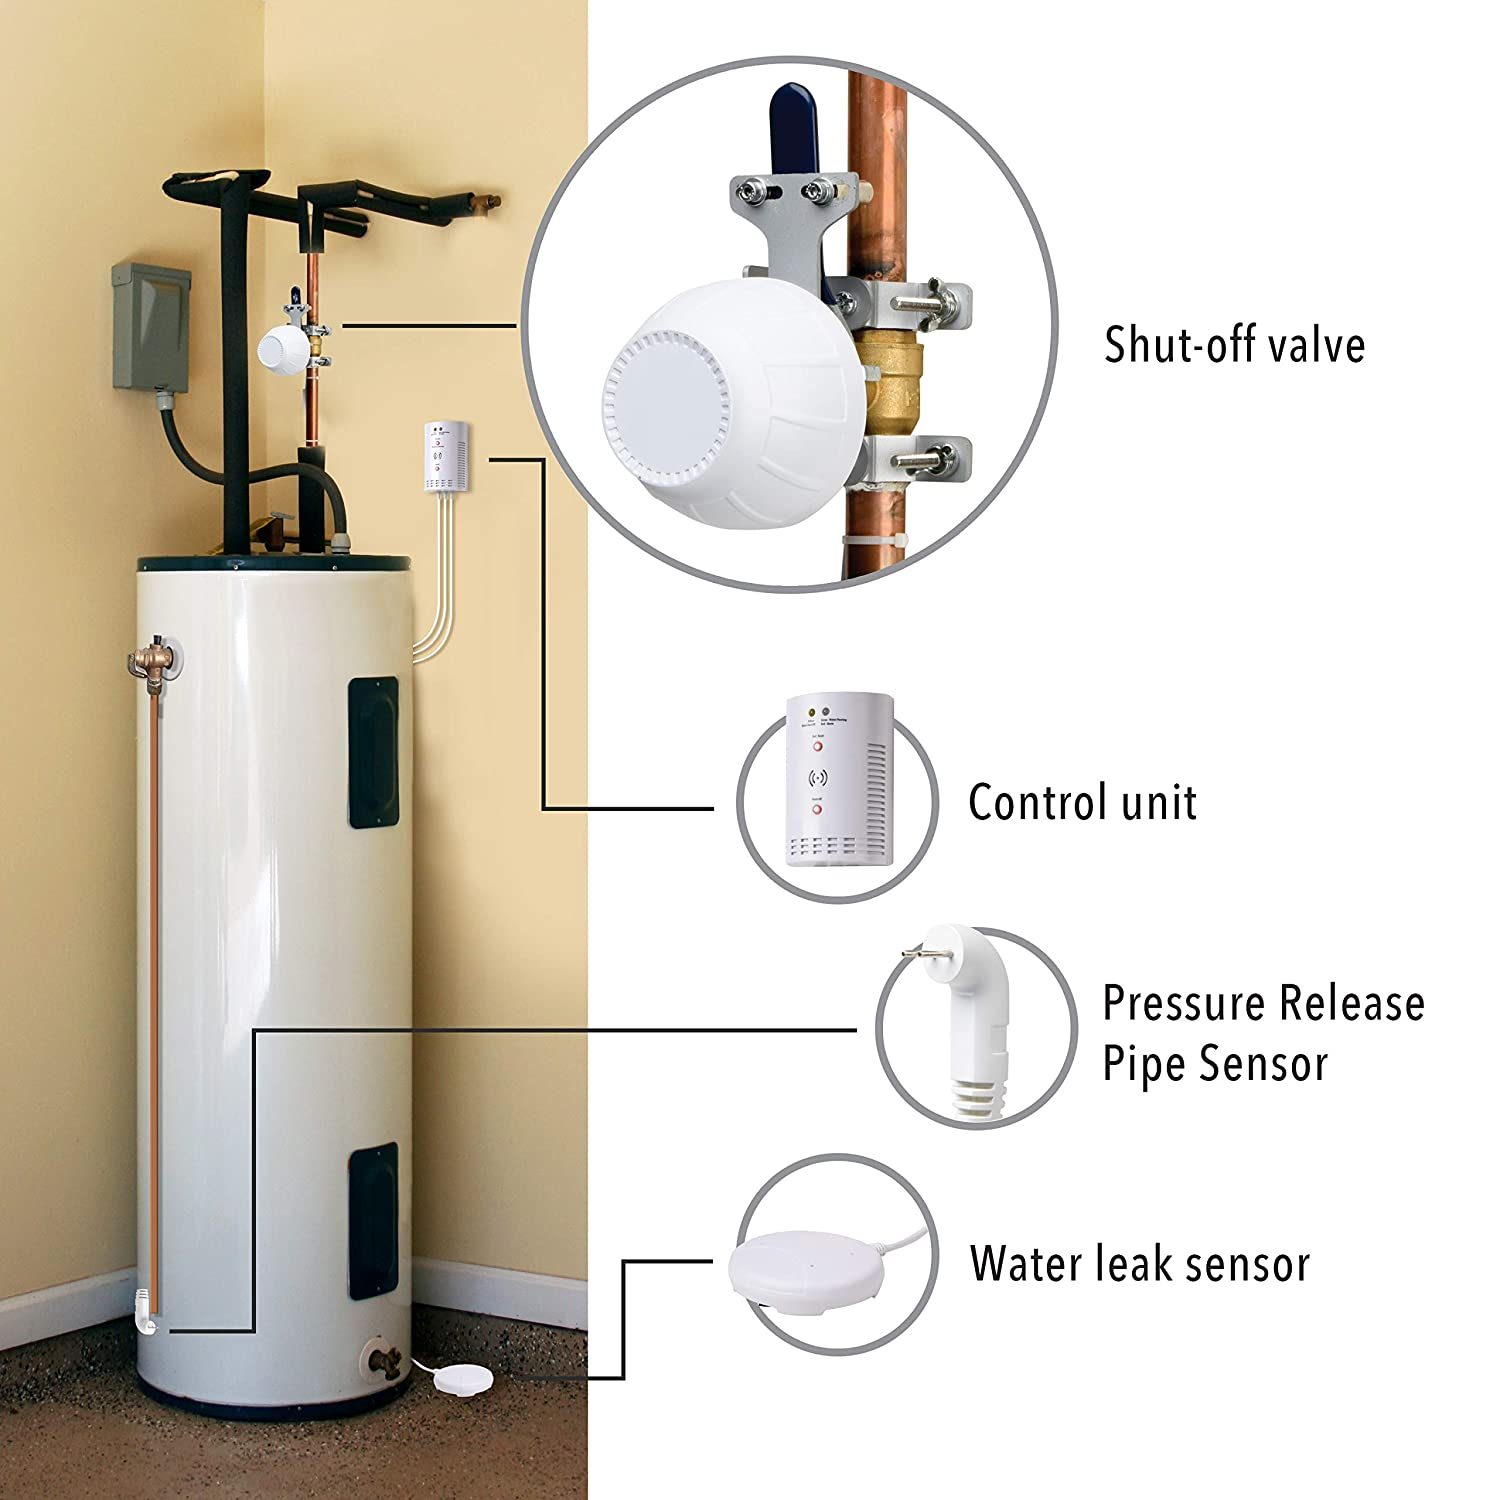 MyGuard Automatic Hot Water Heater Shut Off System and Water Leak Alarm and Detector